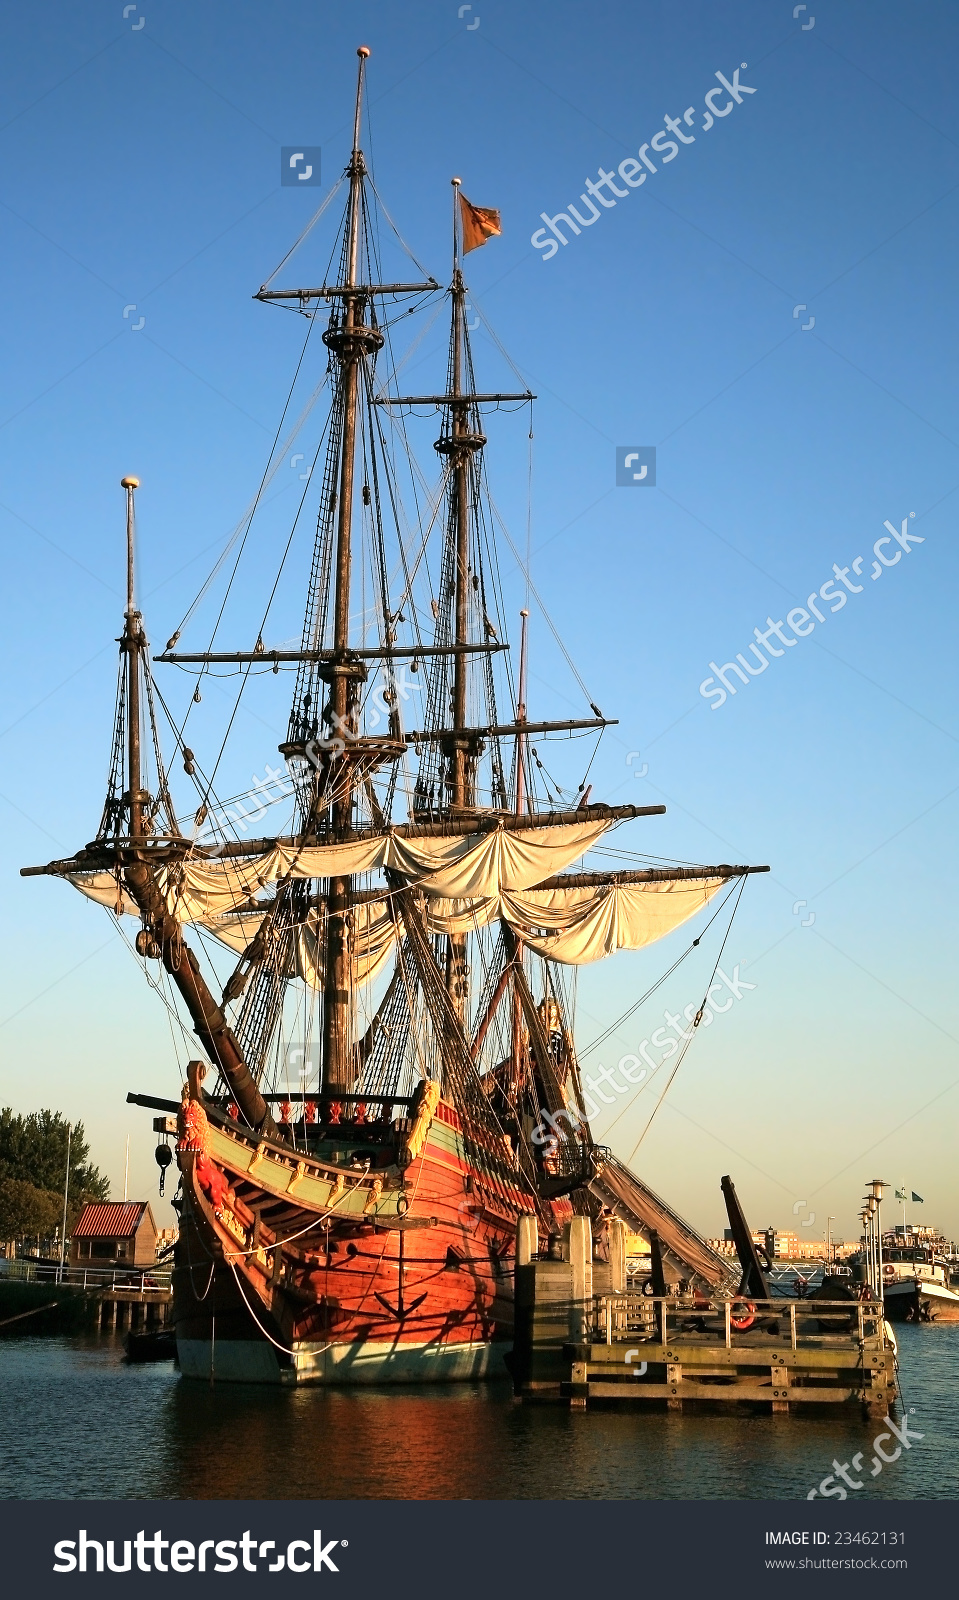 Batavia Historic Galleon From Netherlands By Sunset. Old Ship.